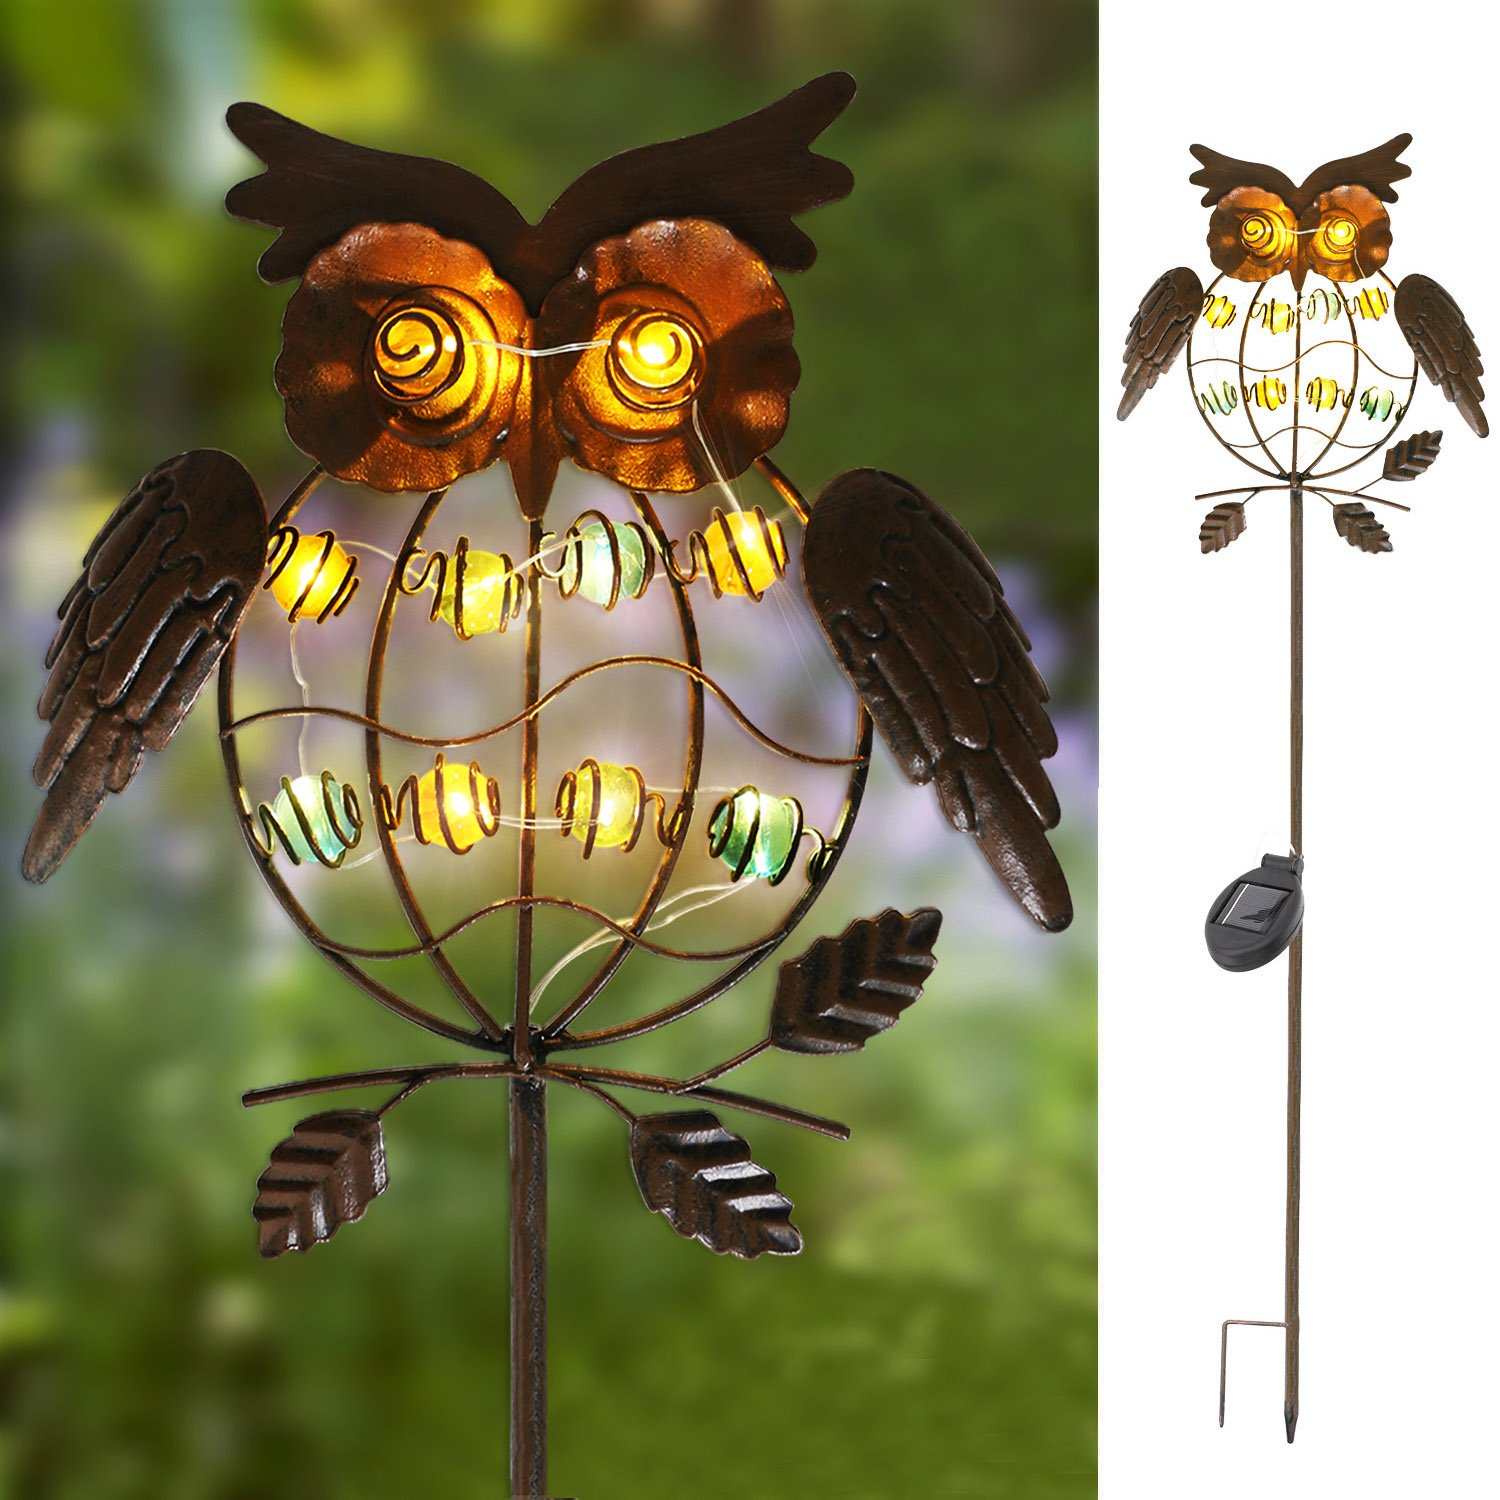 TAKE ME Garden Solar Lights Outdoor,Solar Powered Stake Lights - Metal OWL LED Decorative Garden Lights for Walkway,Pathway,Yard,Lawn